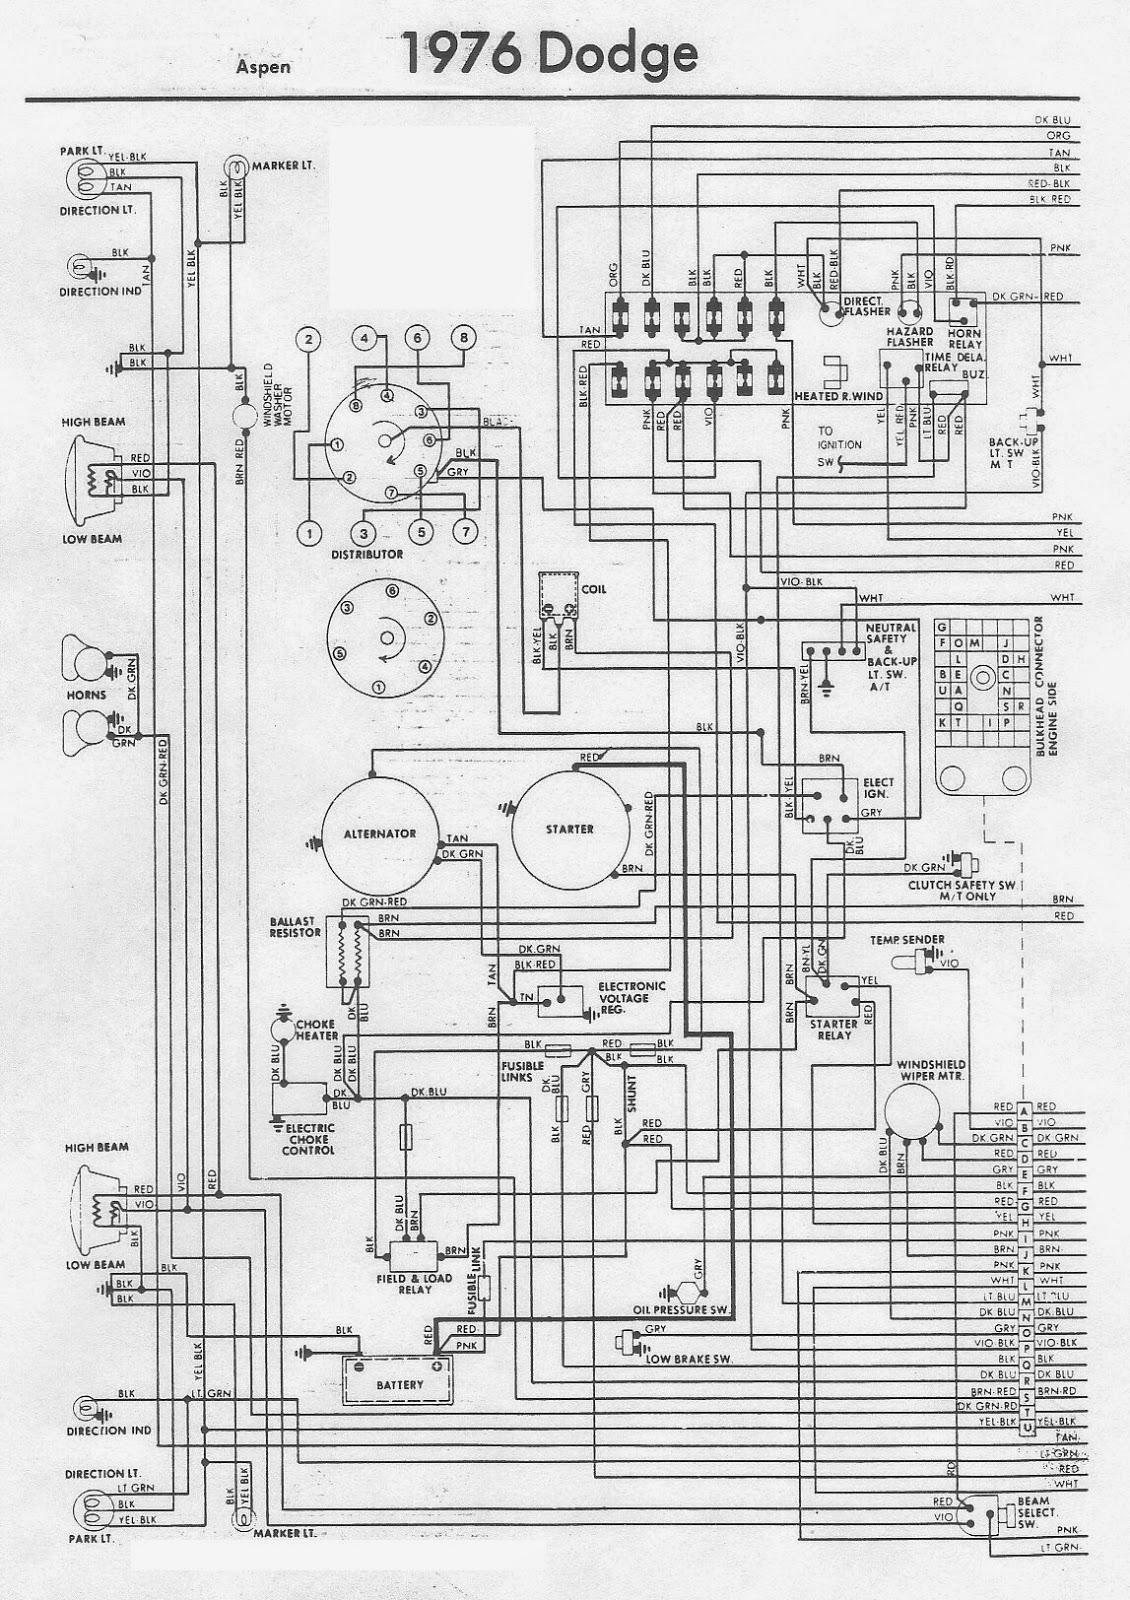 The%2B1976%2BDodge%2BAspen%2BWiring%2BDiagrams%2Ba the 1976 dodge aspen wiring diagram electrical system circuit dodge wiring diagrams at readyjetset.co